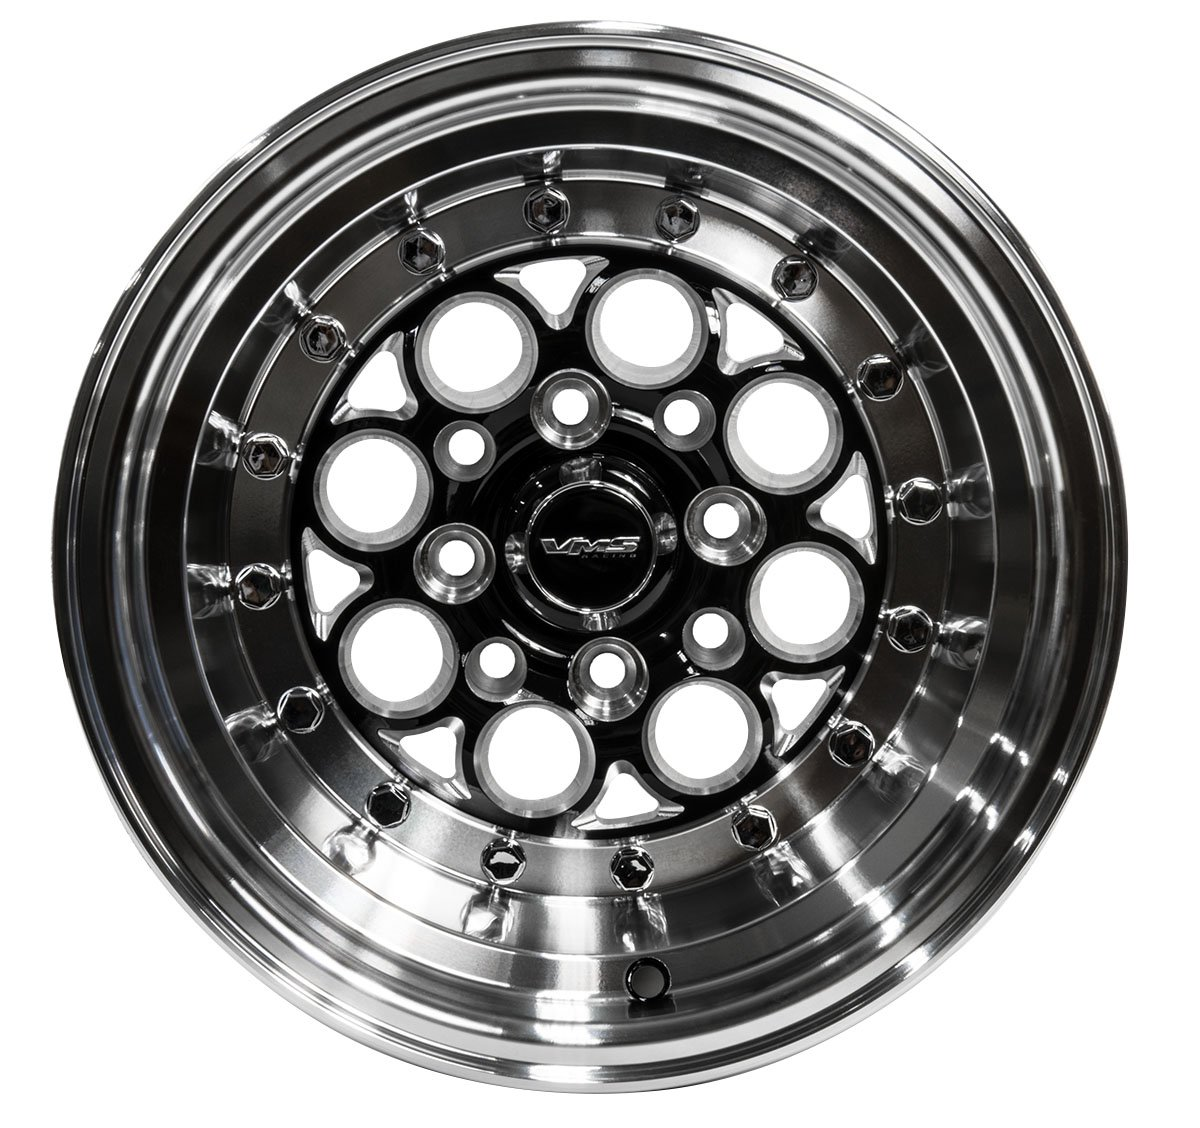 ... VMS Racing Modulo 4 LUG Drag Track WHEELS RIMS 4x100 / 4x114 ET0 Offset 0 in BLACK SILVER Cast Machined Aluminum for Toyota Yaris 07-10 (4 lug pattern)